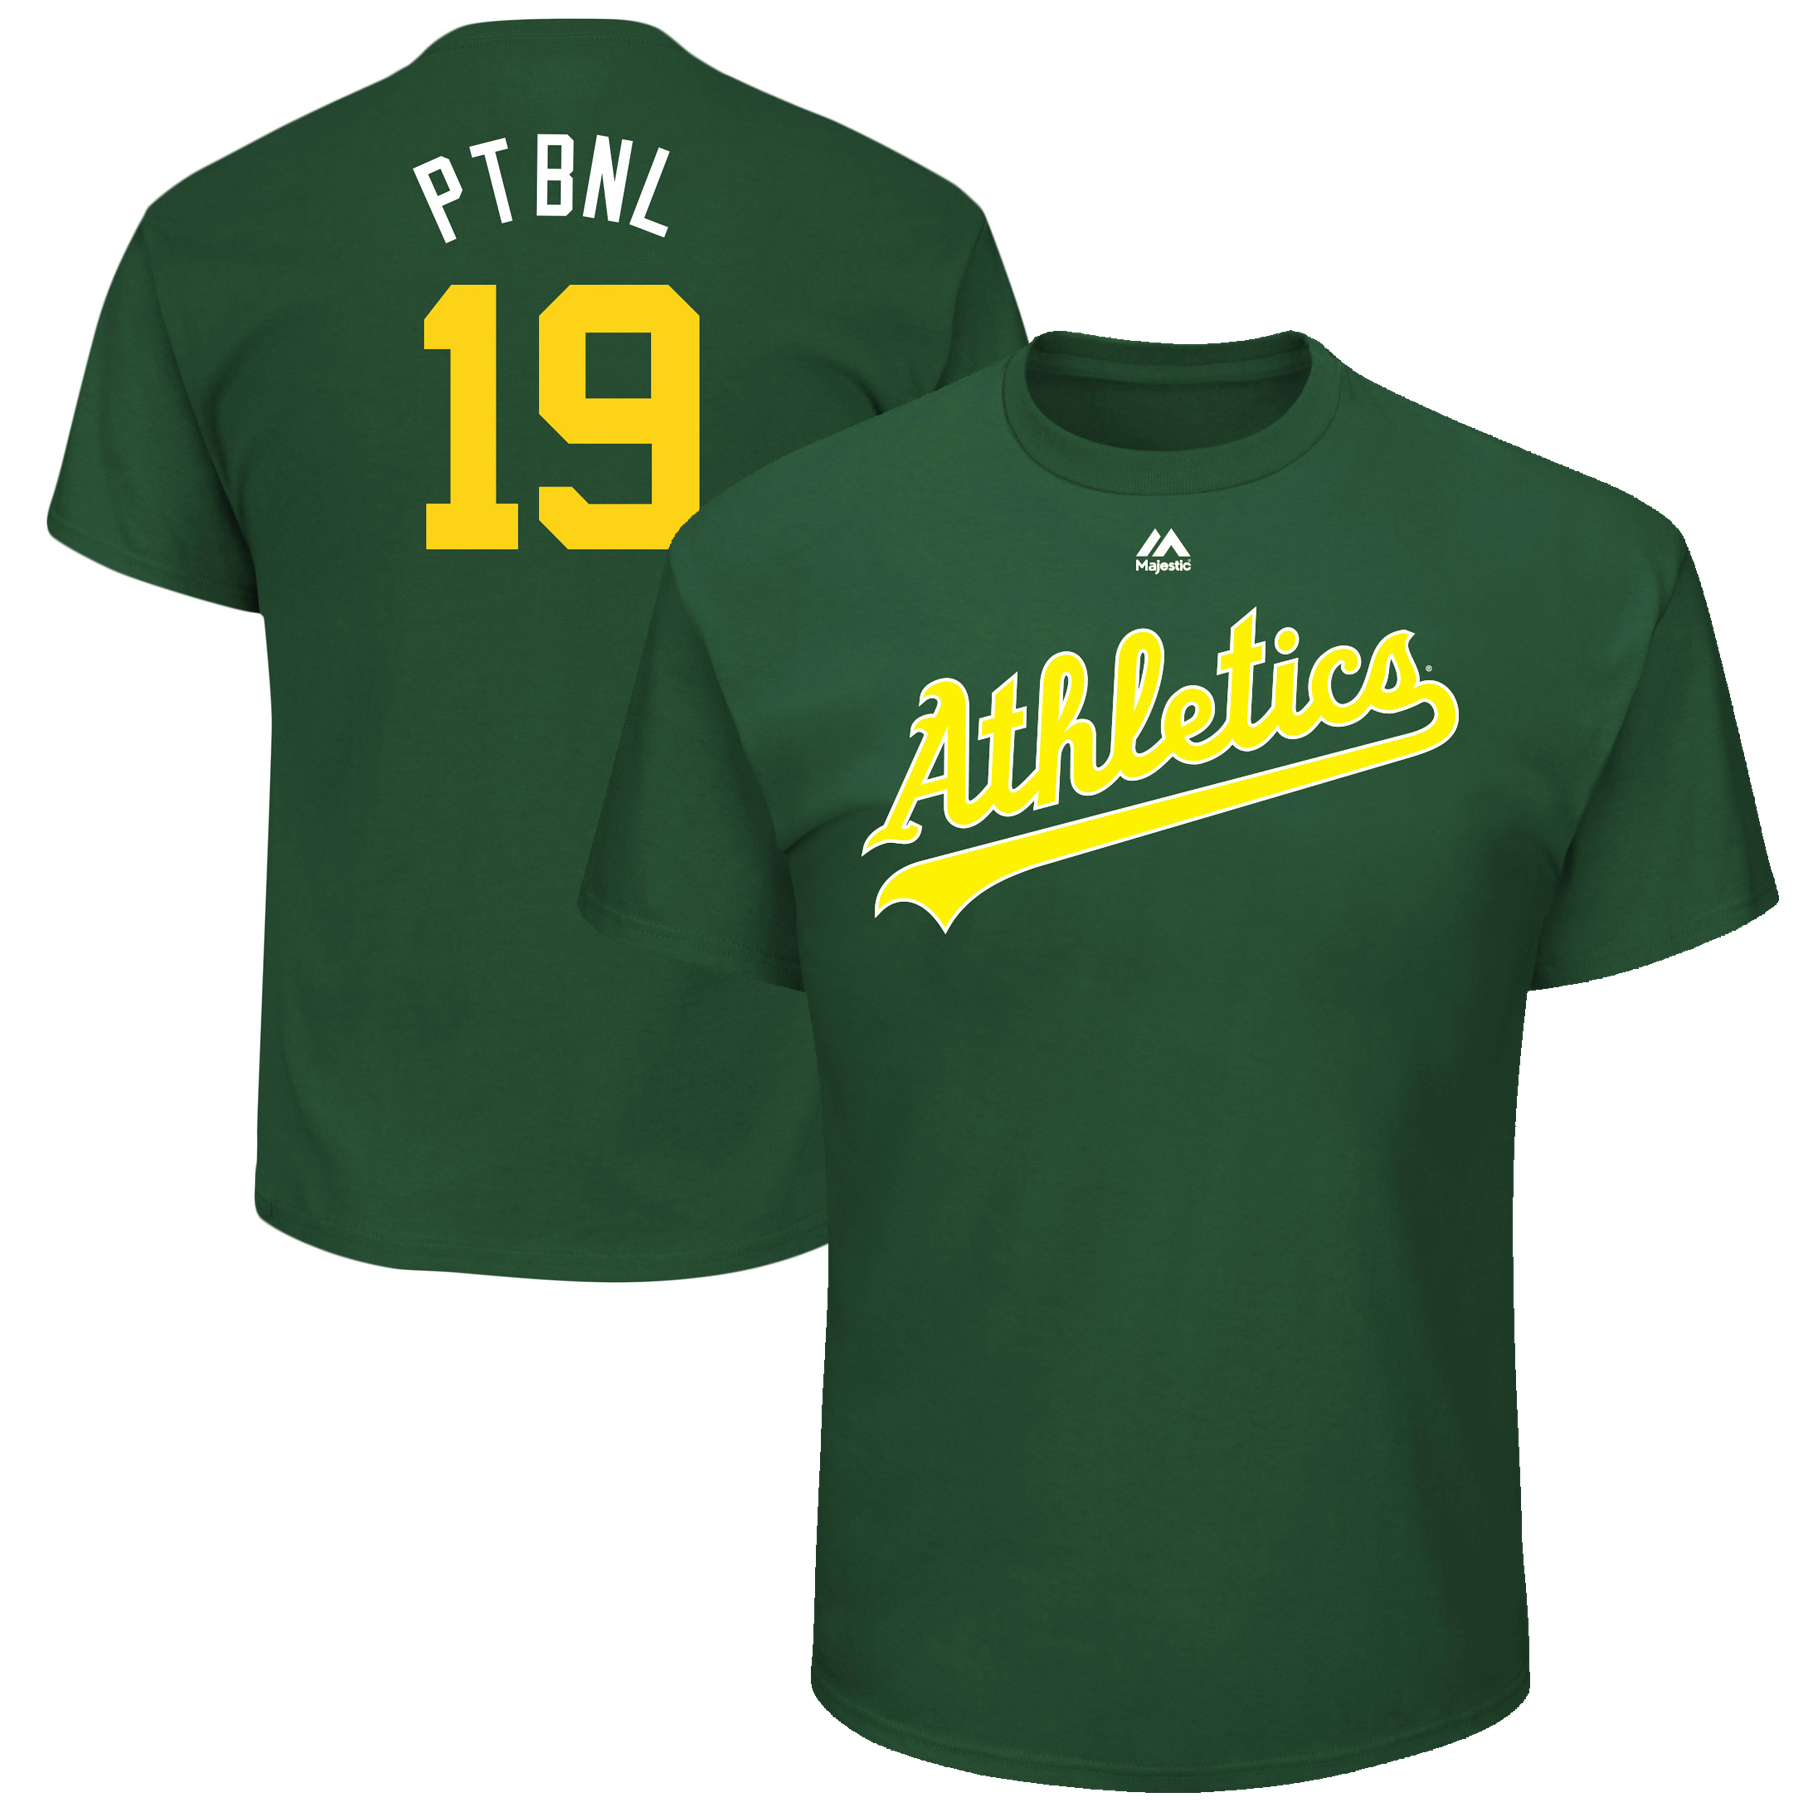 """Josh Phegley """"PTBLN"""" Oakland Athletics Majestic Youth 2017 Players Weekend Name & Number T-Shirt - Green"""